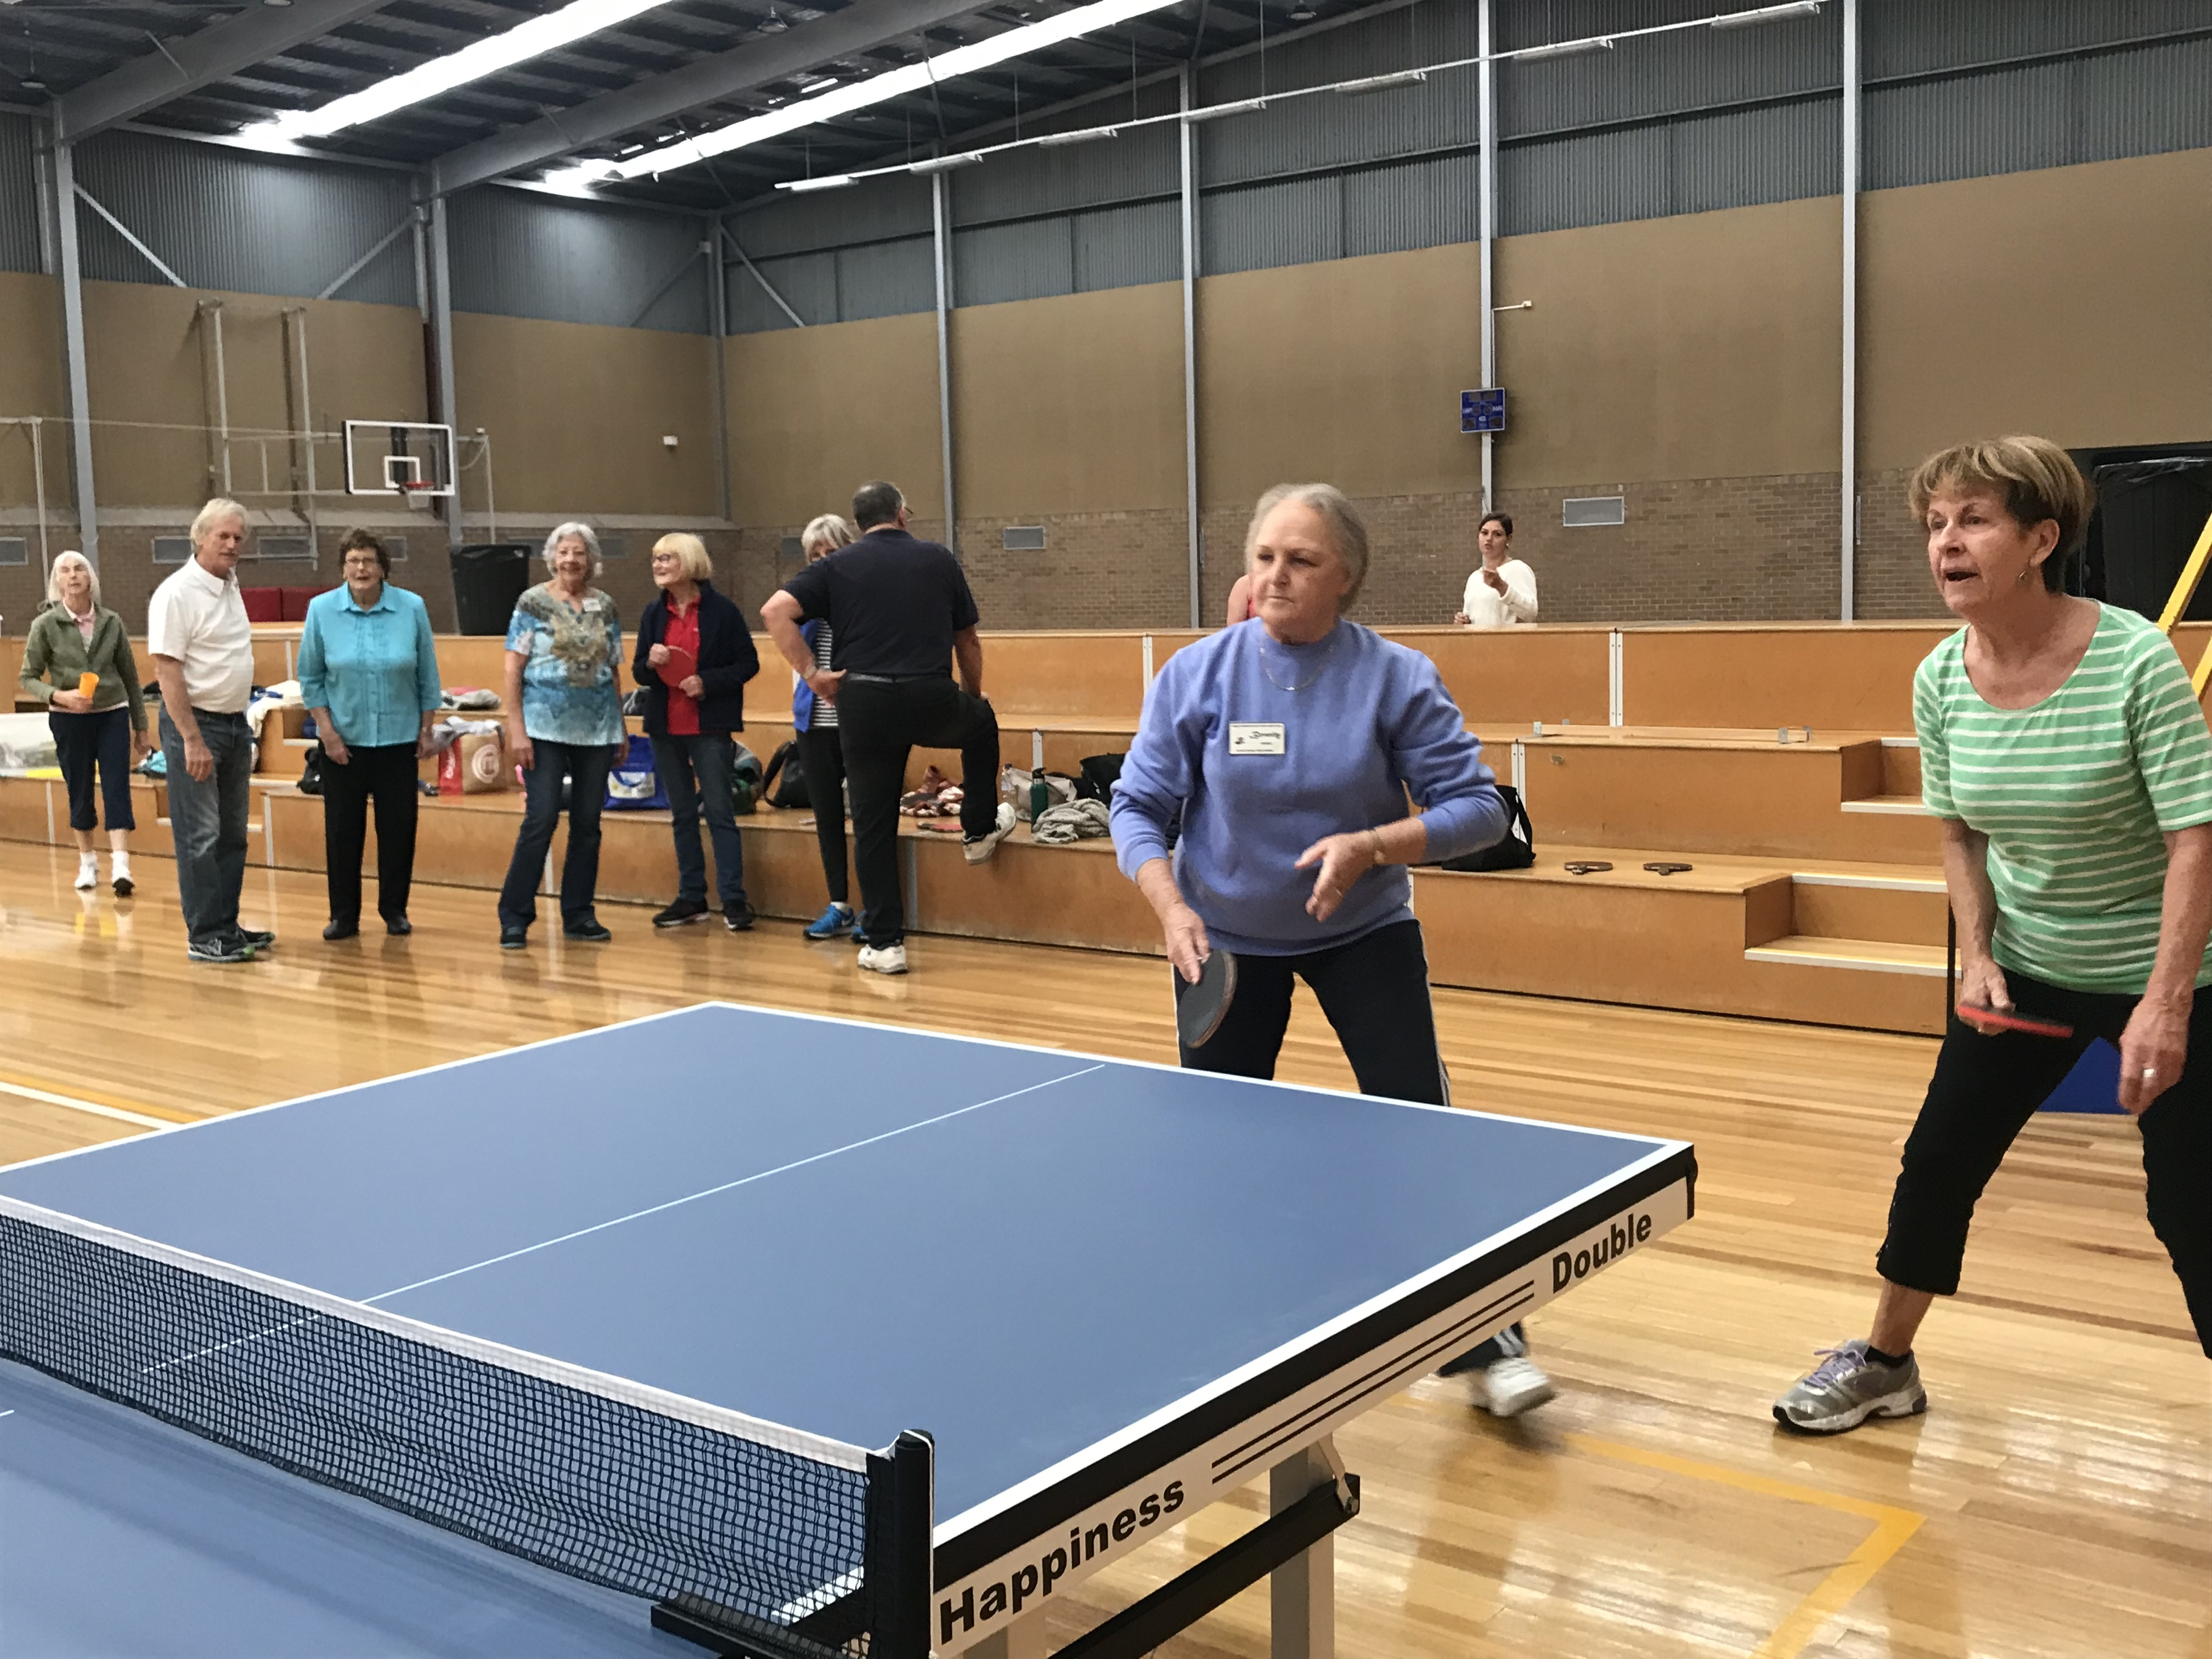 Gippy Girls from Moe Keenagers Table Tennis